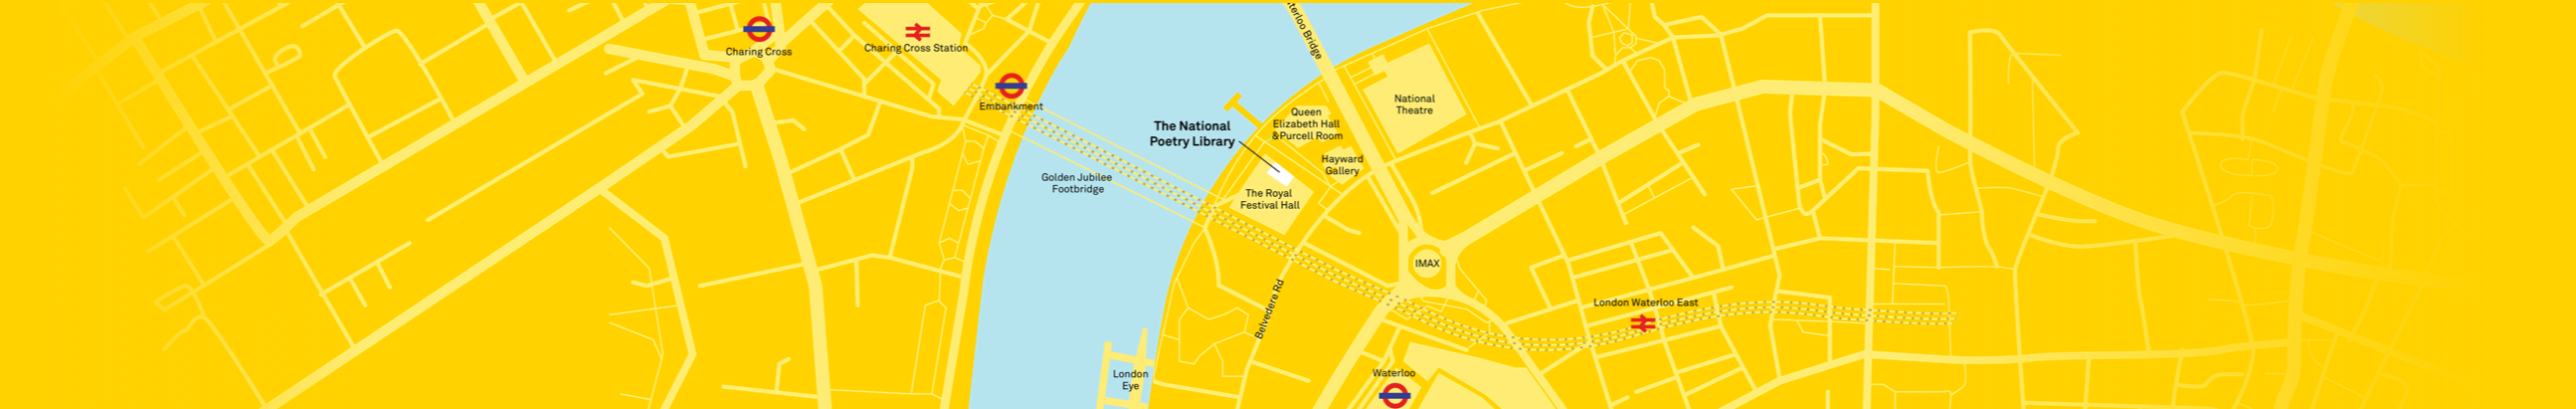 Competitions | National Poetry Library